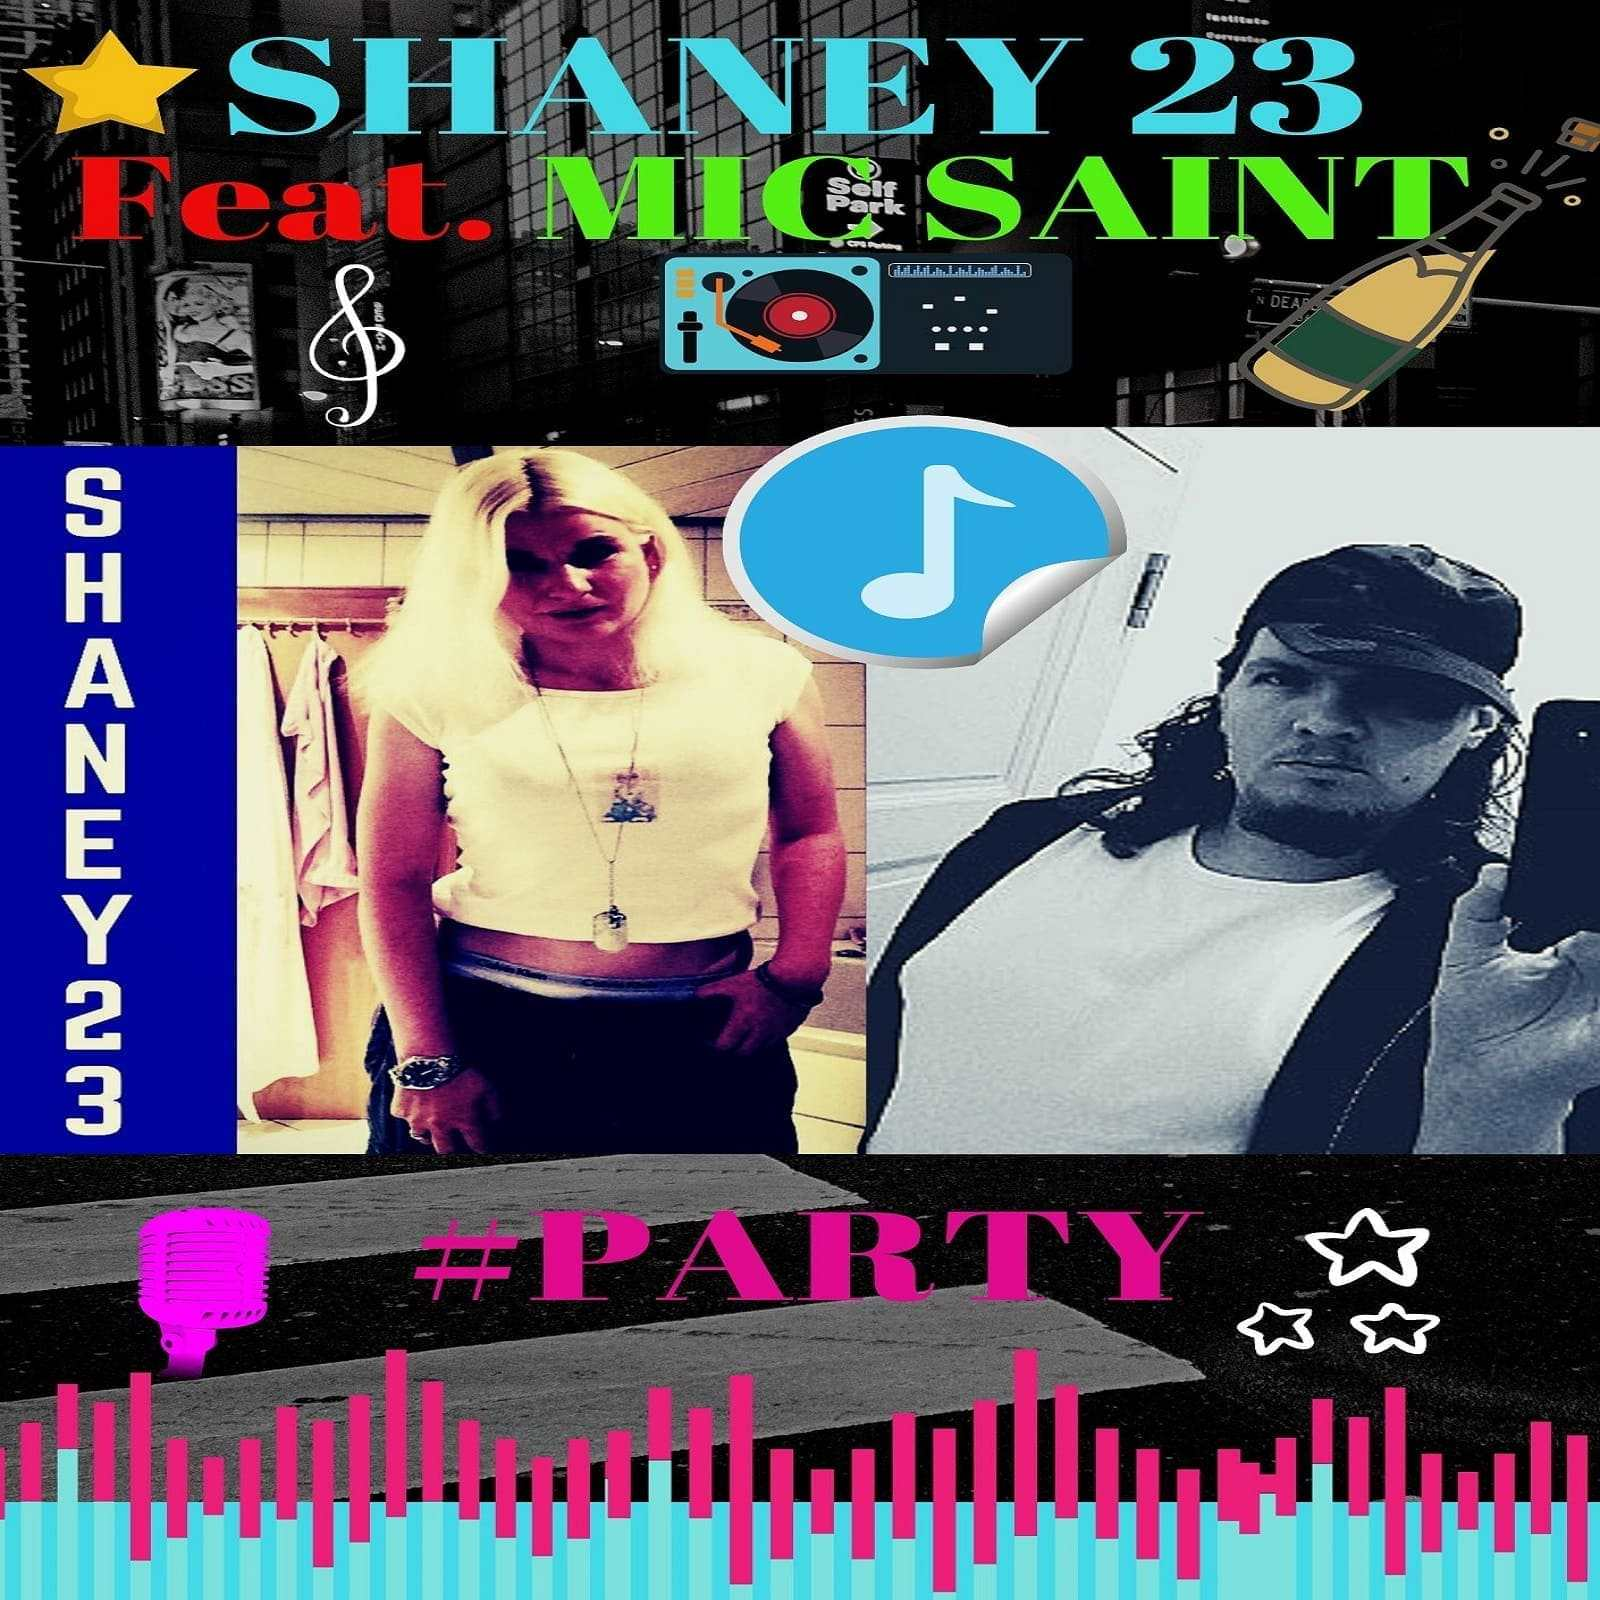 Upcoming: SHANEY 23 feat. MIC SAINT - PARTY [VIDEO]